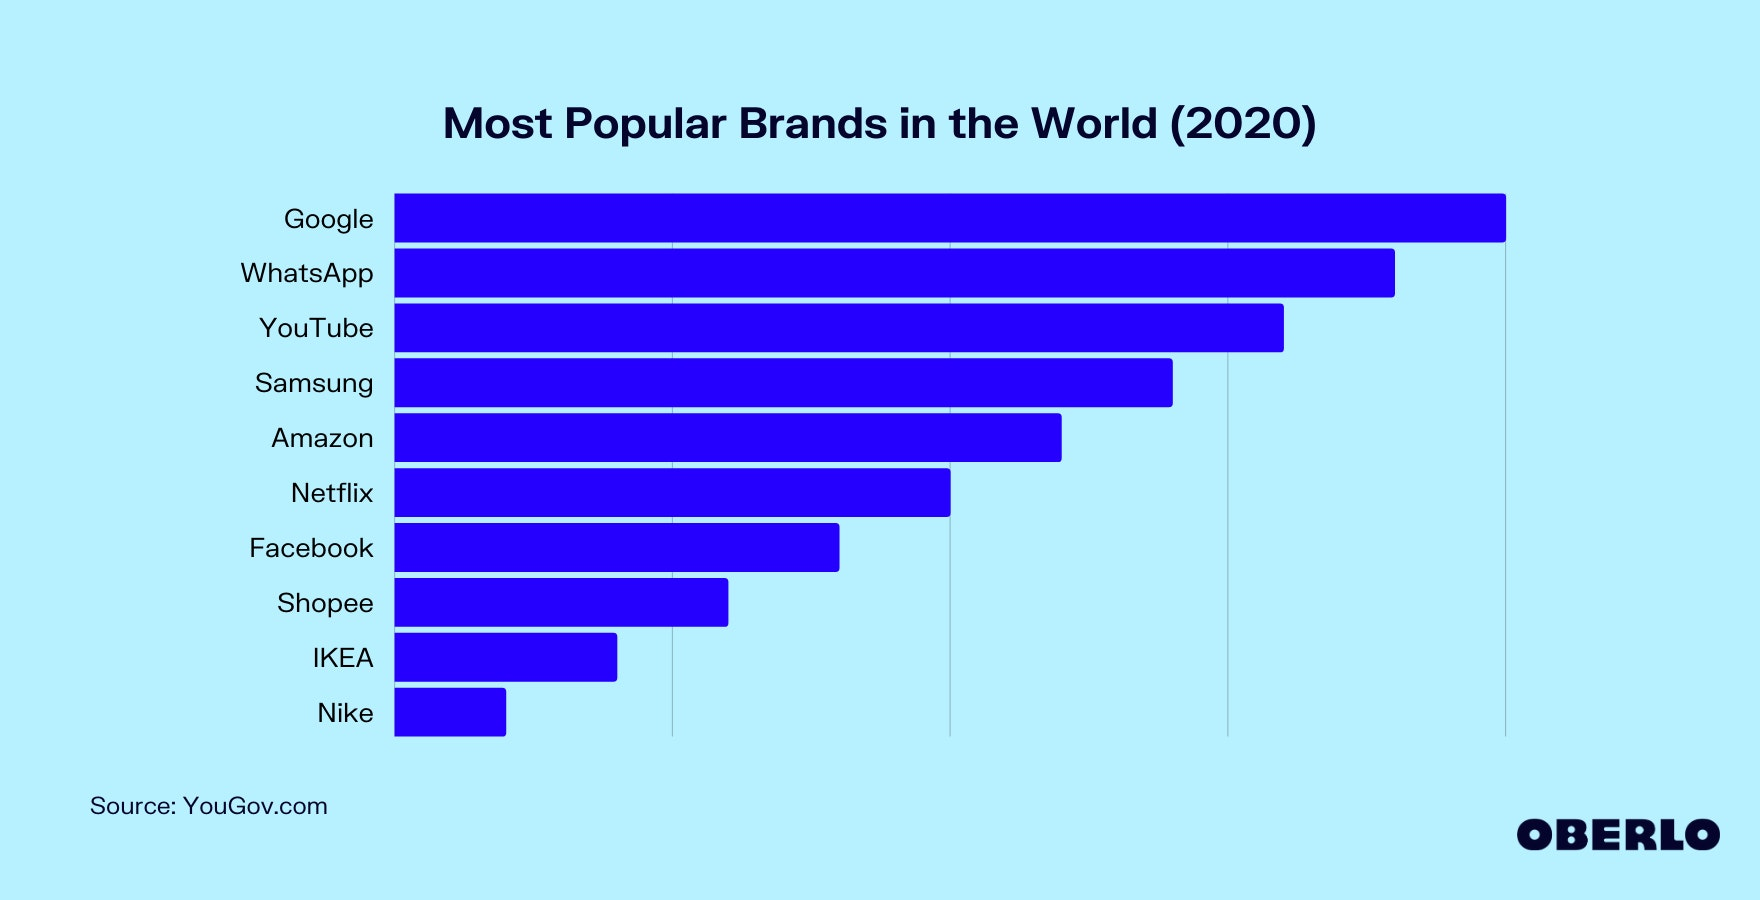 Most Popular Brands in the World Graphic